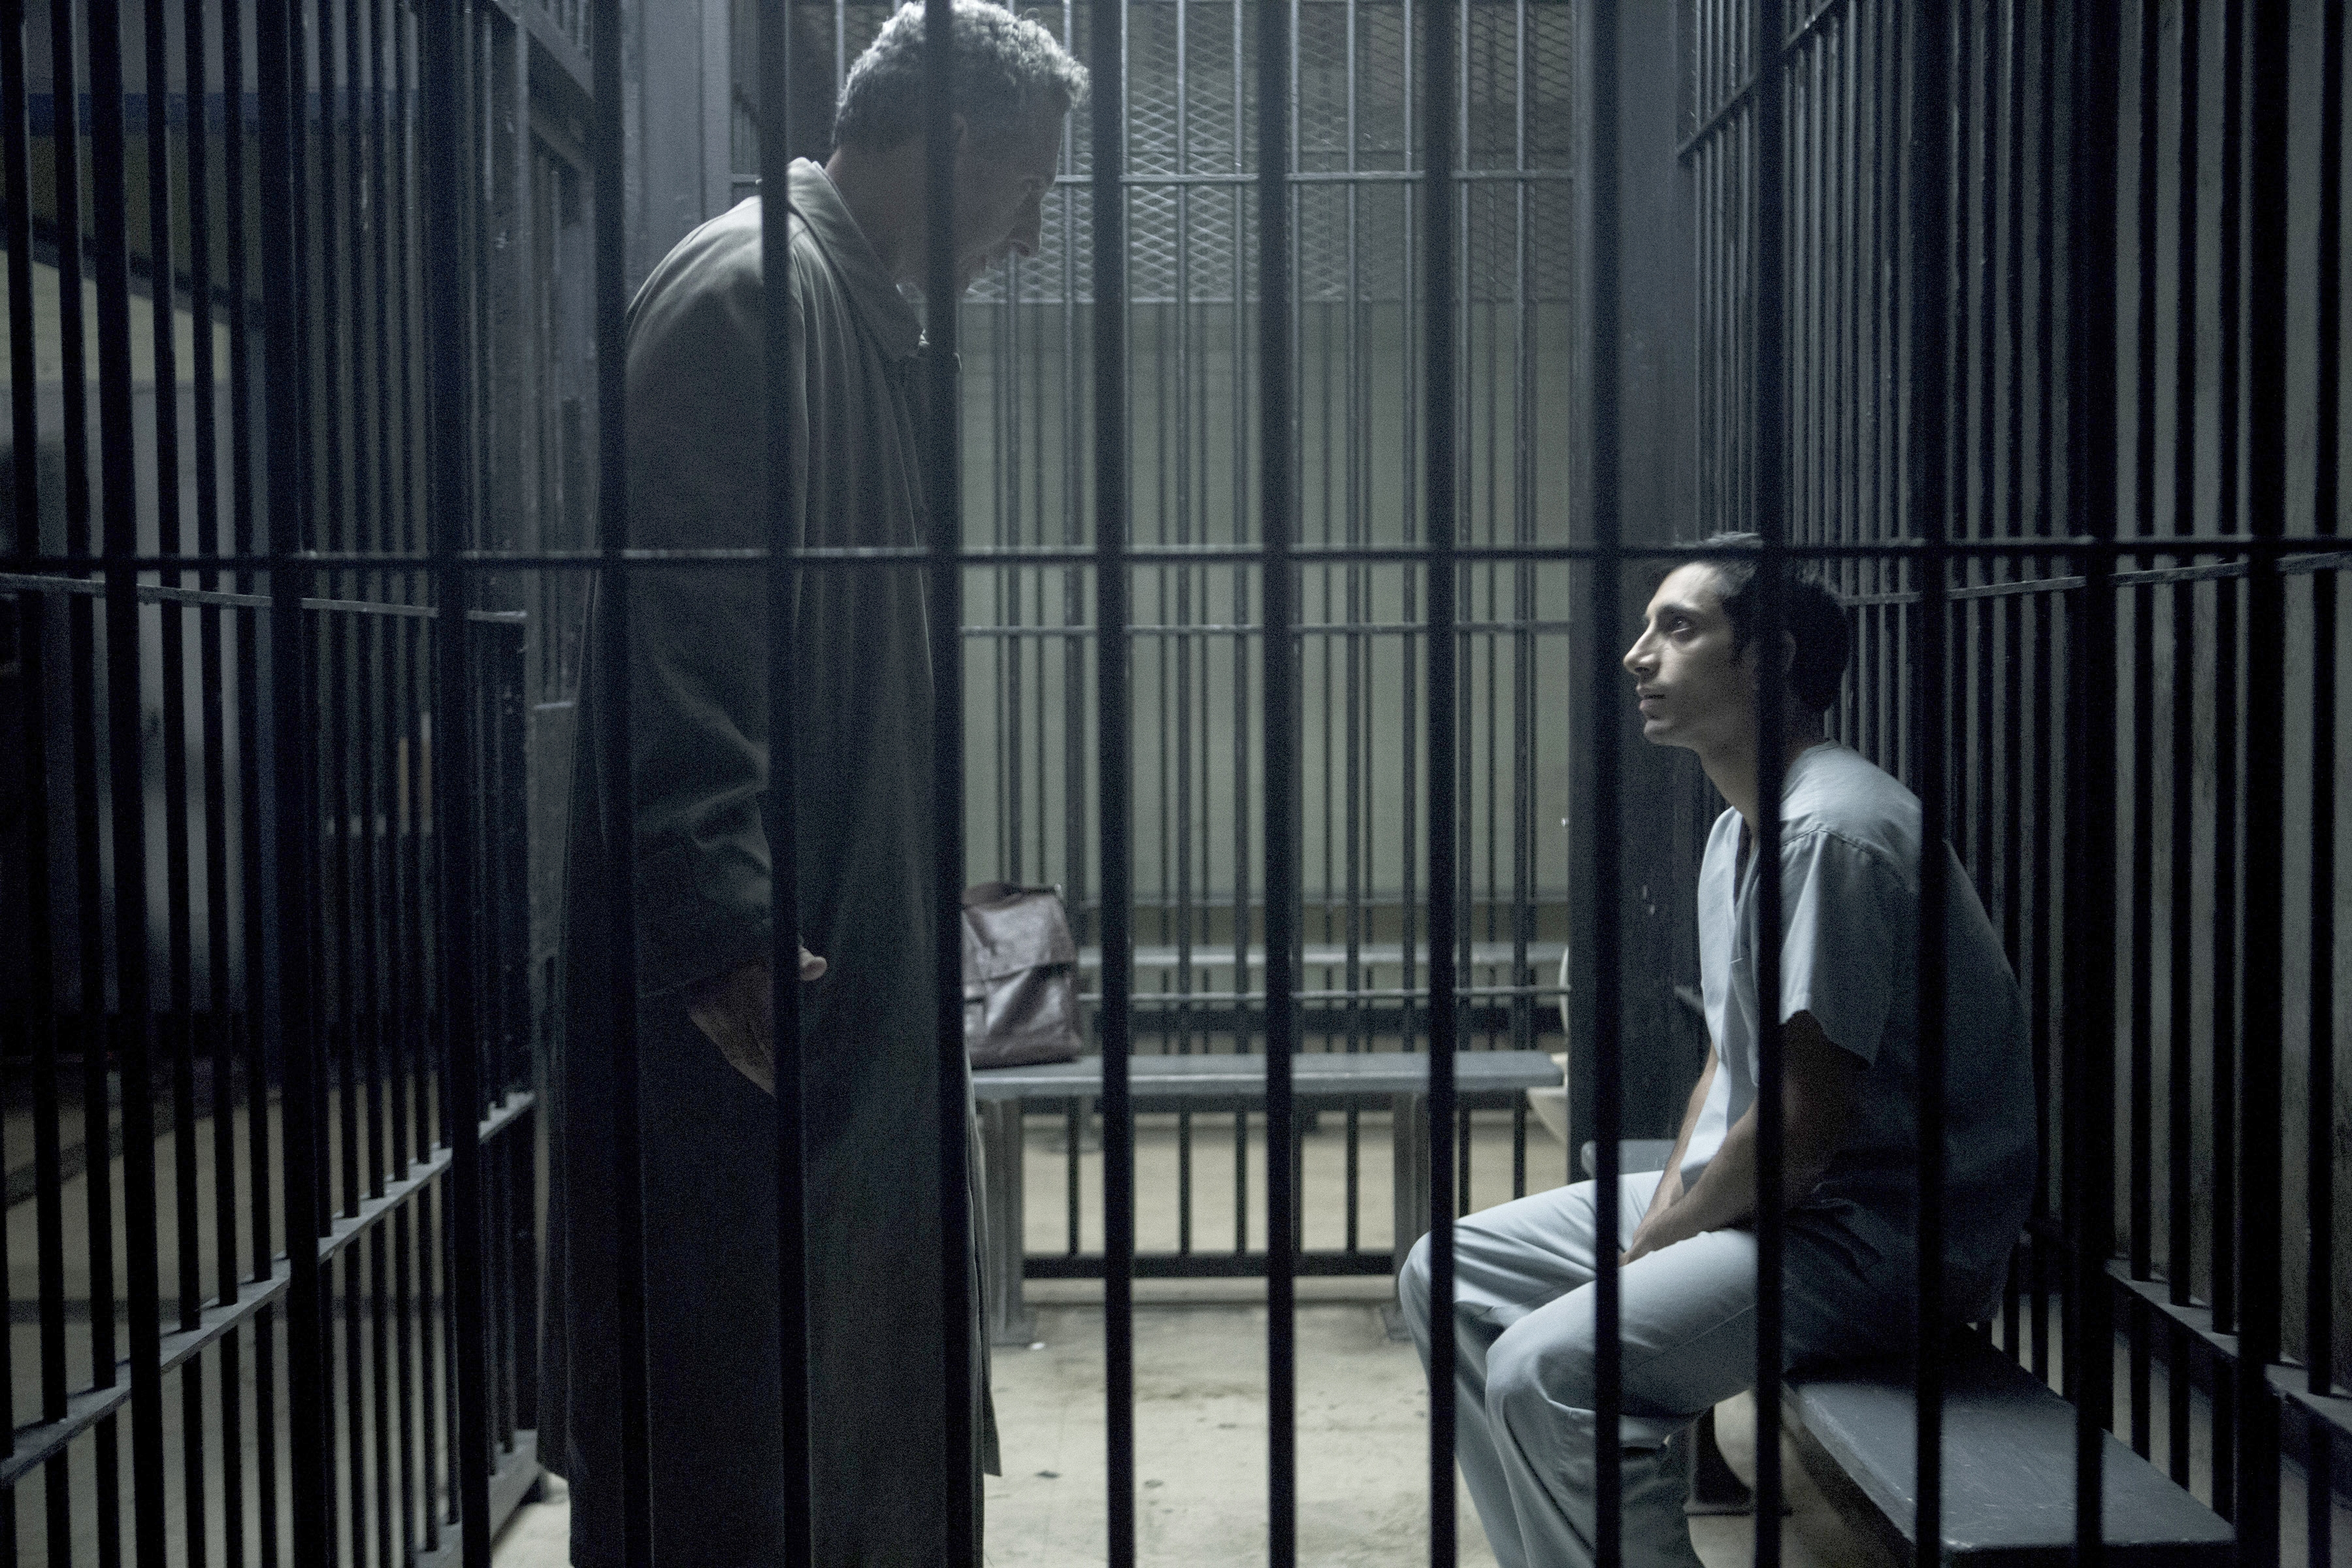 """John Turturro, left, and Riz Ahmed star in HBO's limited series """"The Night Of,"""" from writer/director Steve Zaillian and writer Richard Price. (HBO)"""